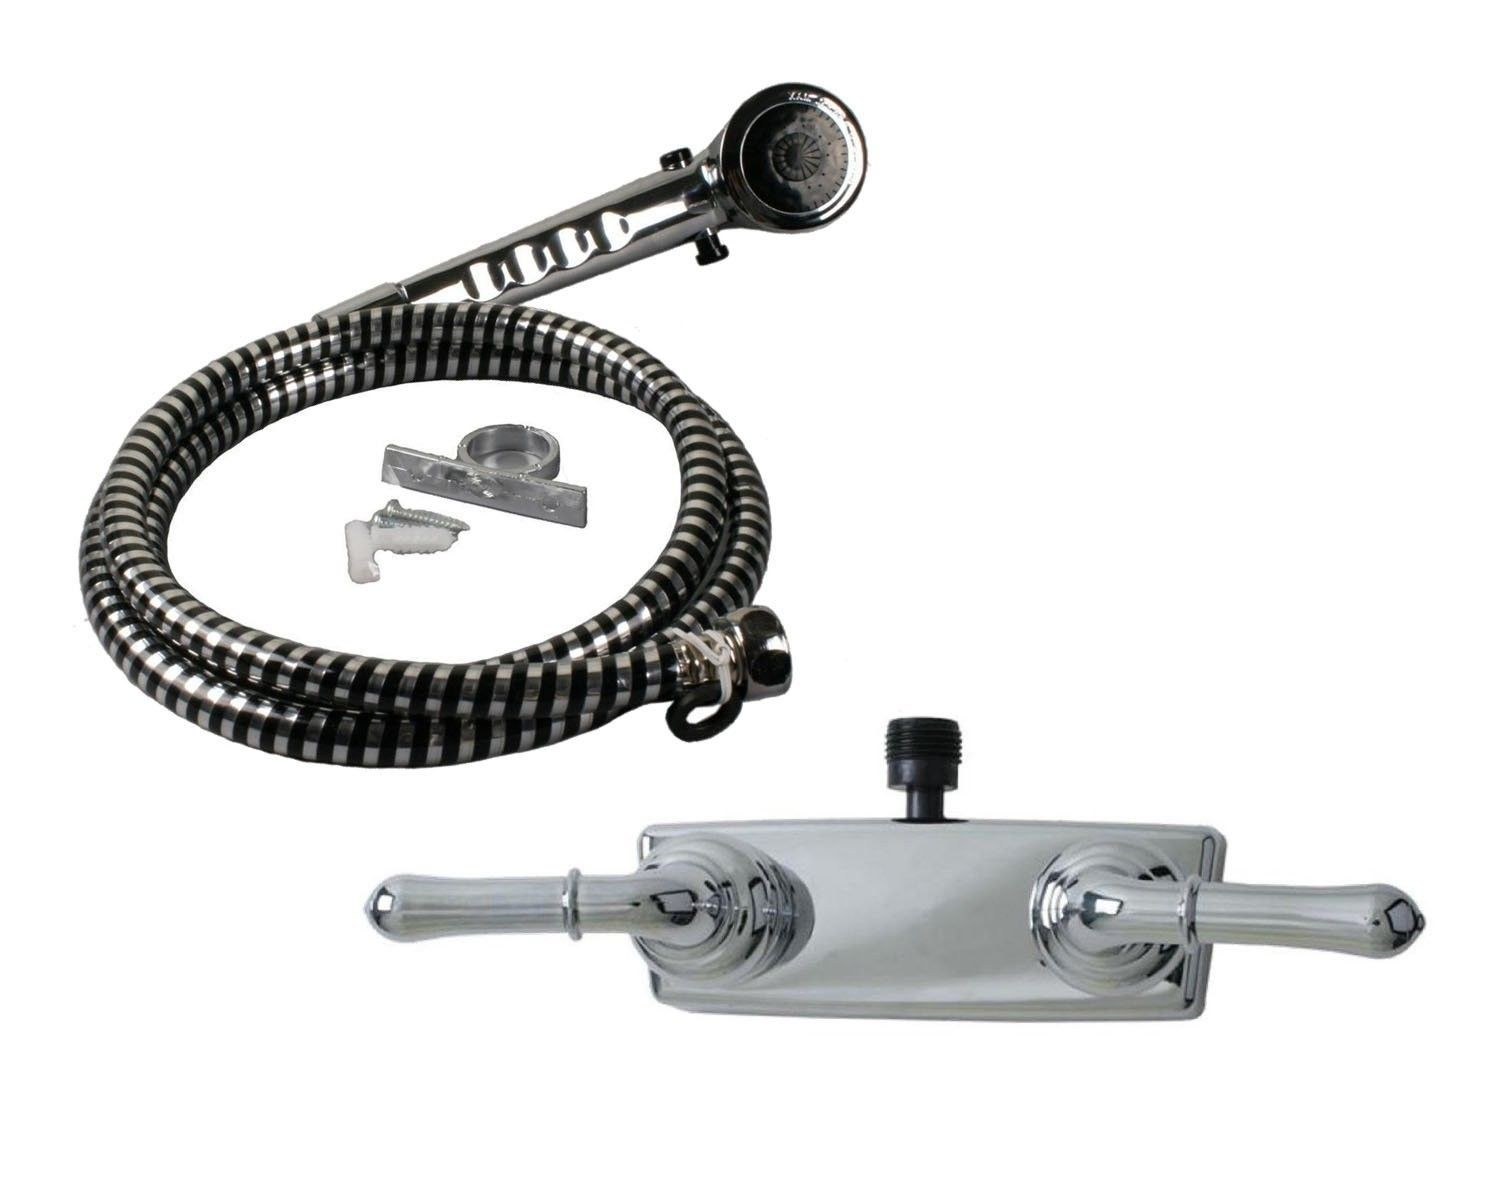 Ultra Faucets Chrome RV Mobile Home Shower Faucet With ... on mobile home replacement sinks, mobile home replacement plumbing, mobile home tub shower faucet, mobile home shower faucet ferguson, mobile home roof over prices,